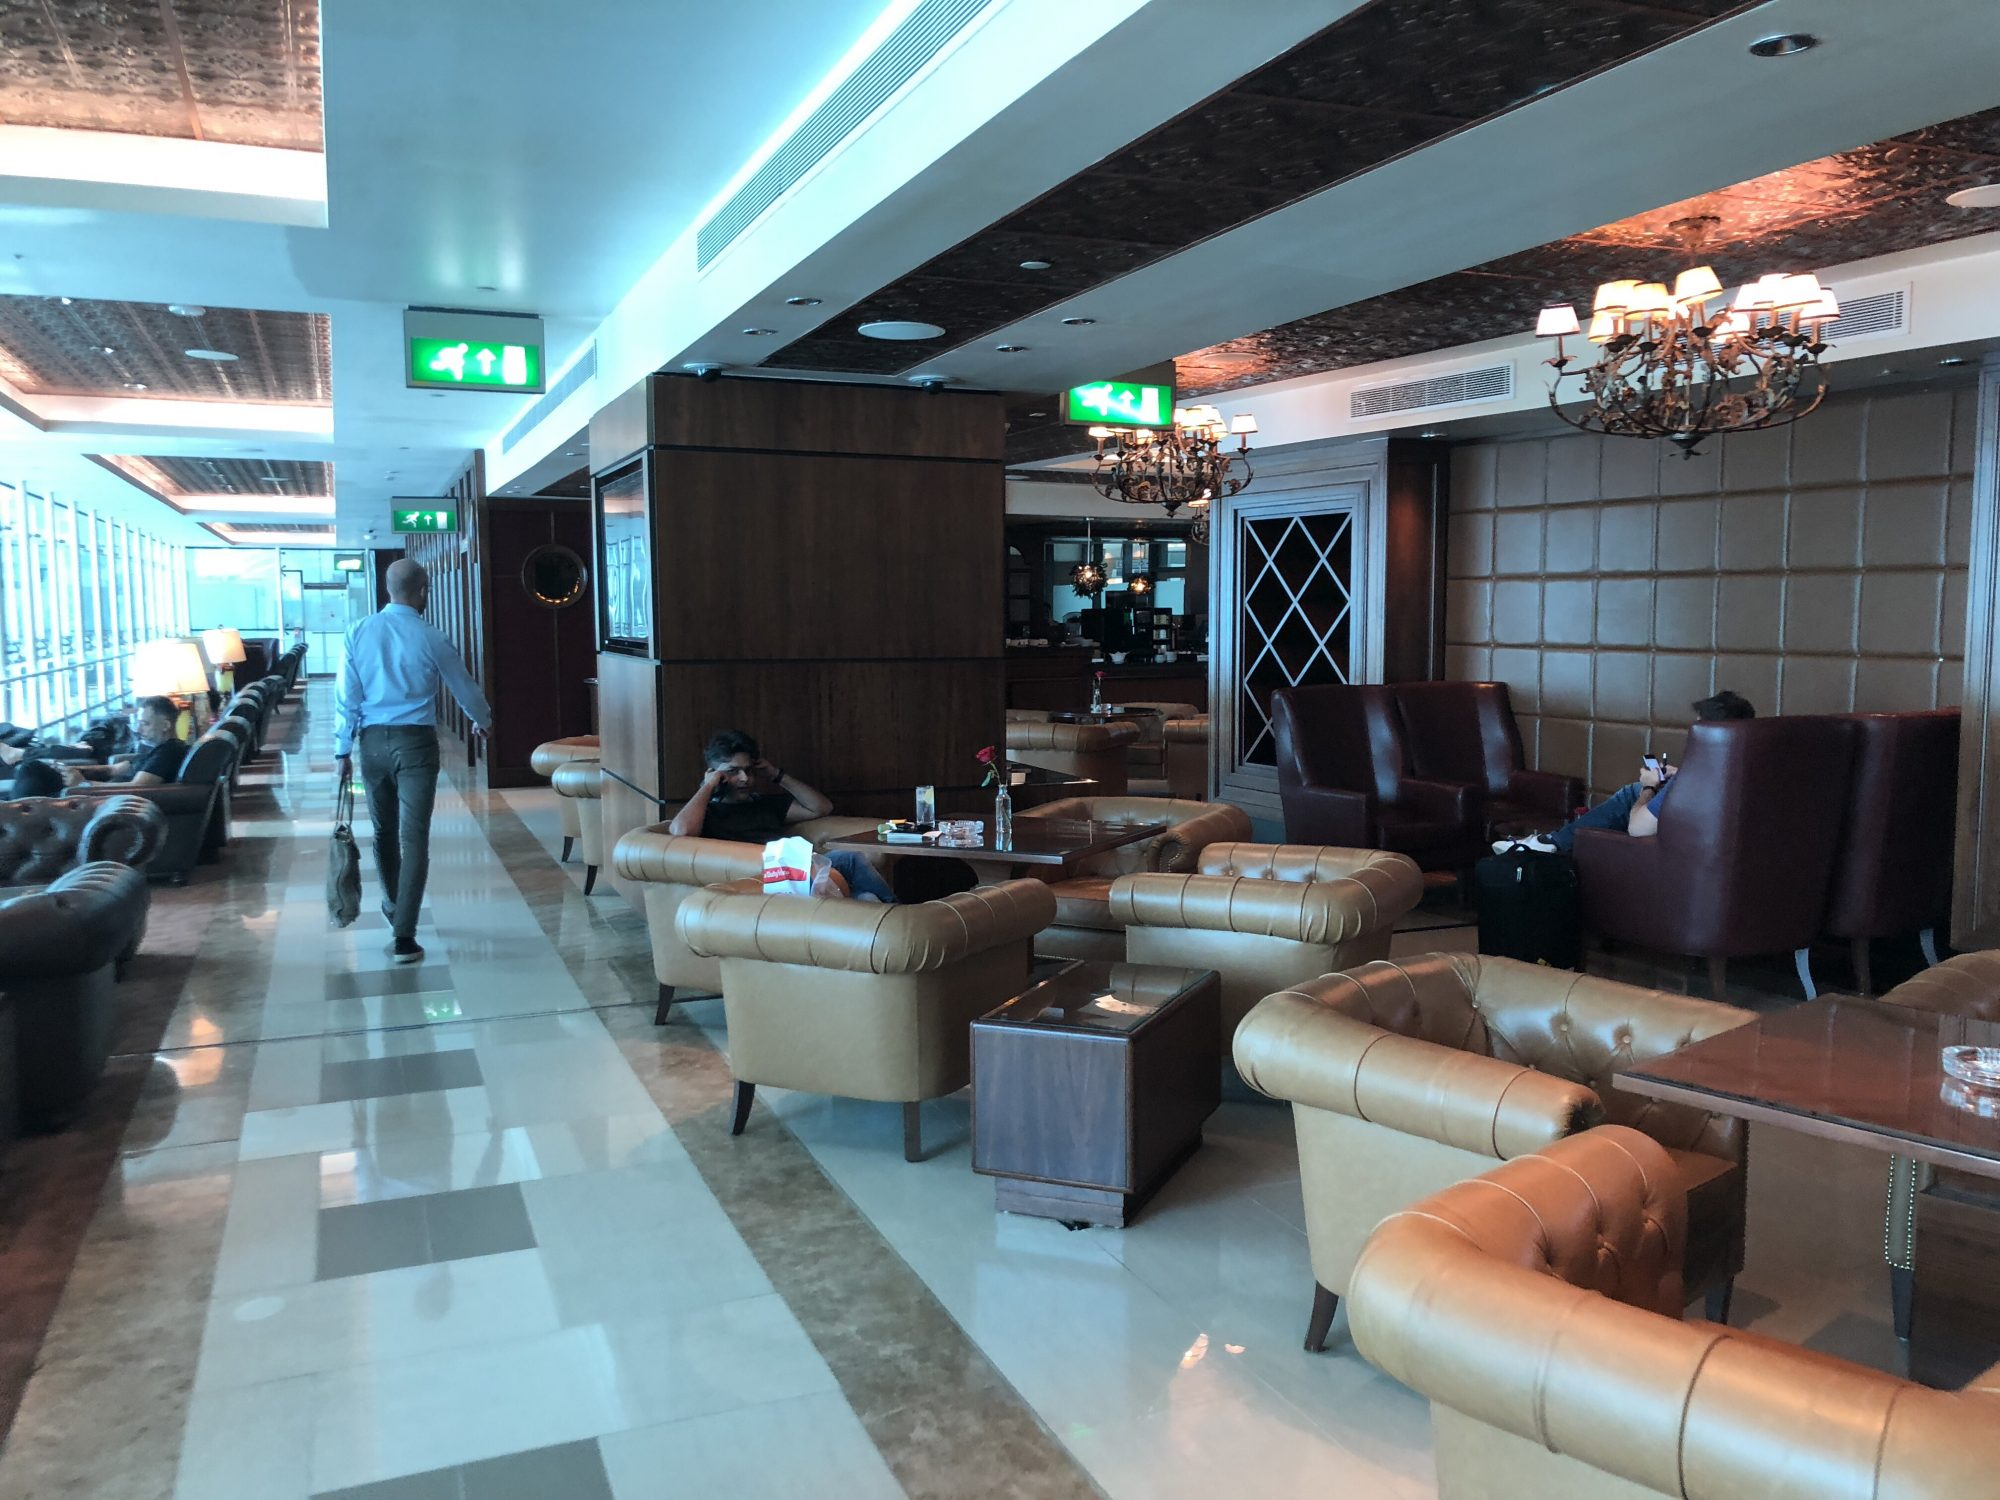 Emirates business class-lounge Dubai